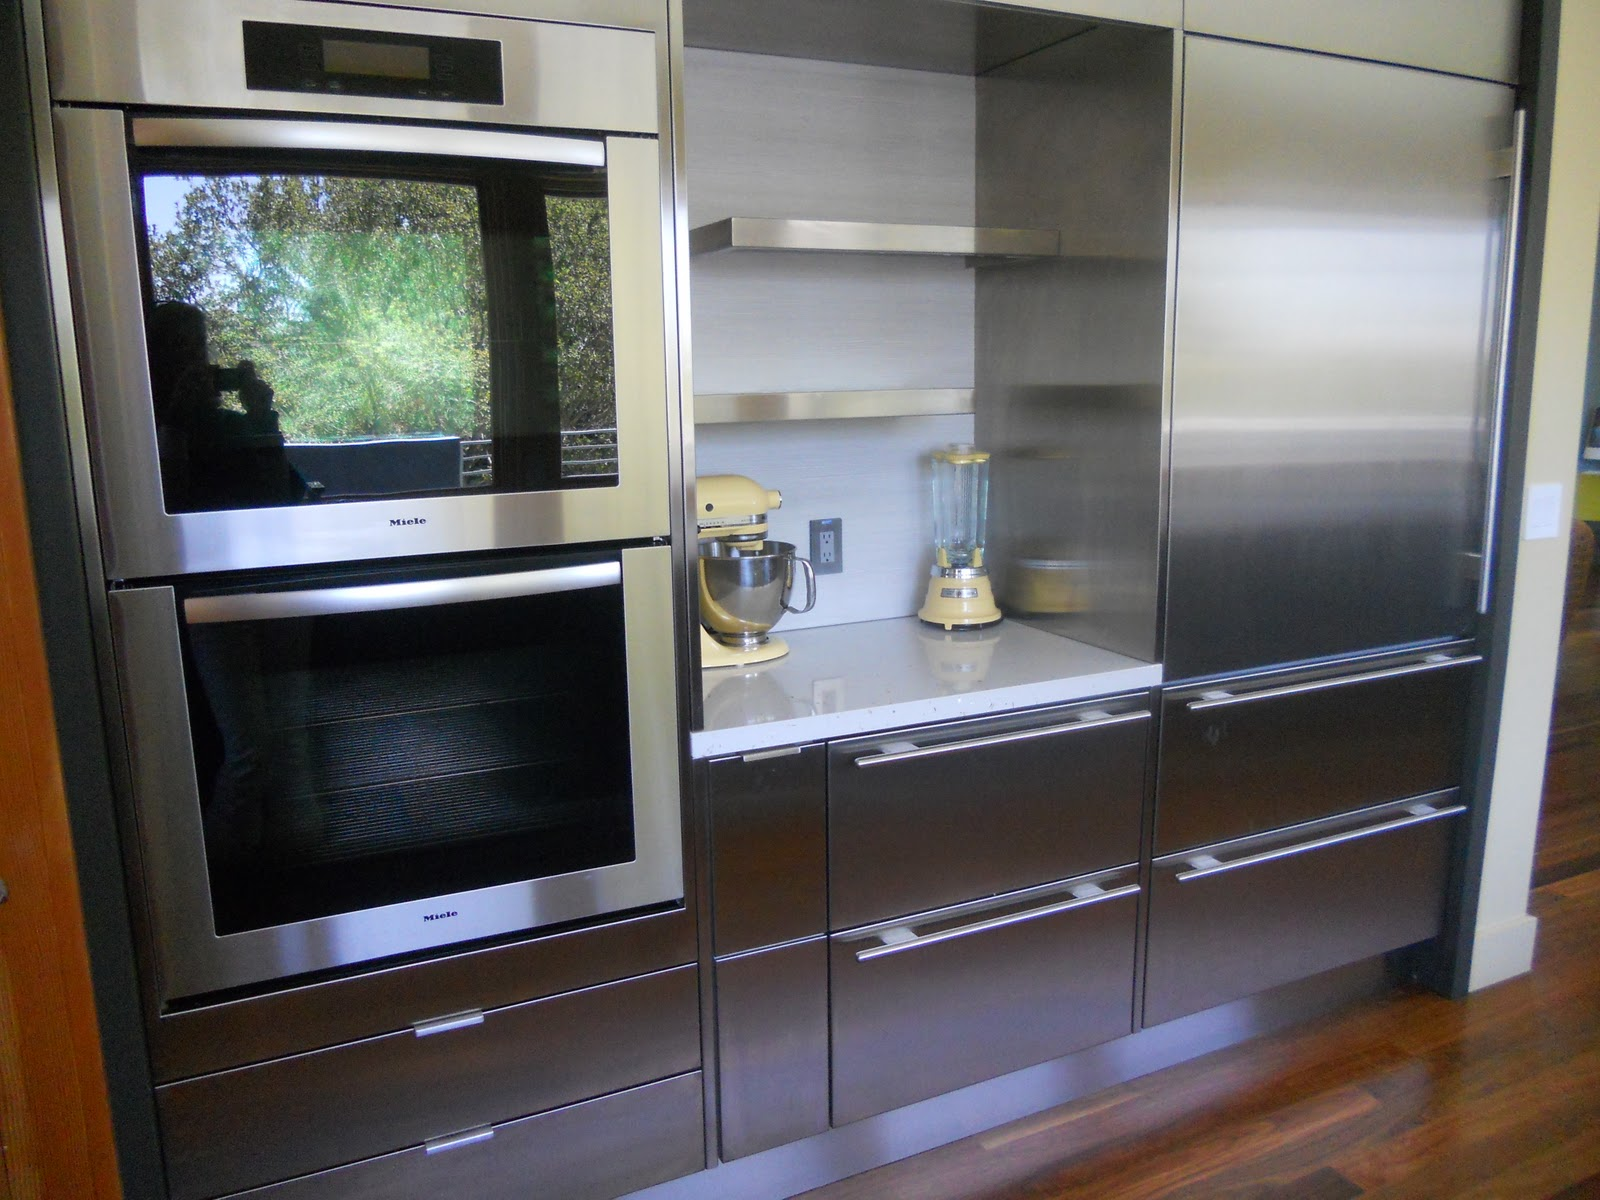 Uncategorized Kitchen All In One Appliance about last weekend our house keeping kitsch out of the kitchen in end most important part is messiest and ugliest pantry some shelves are only one can d